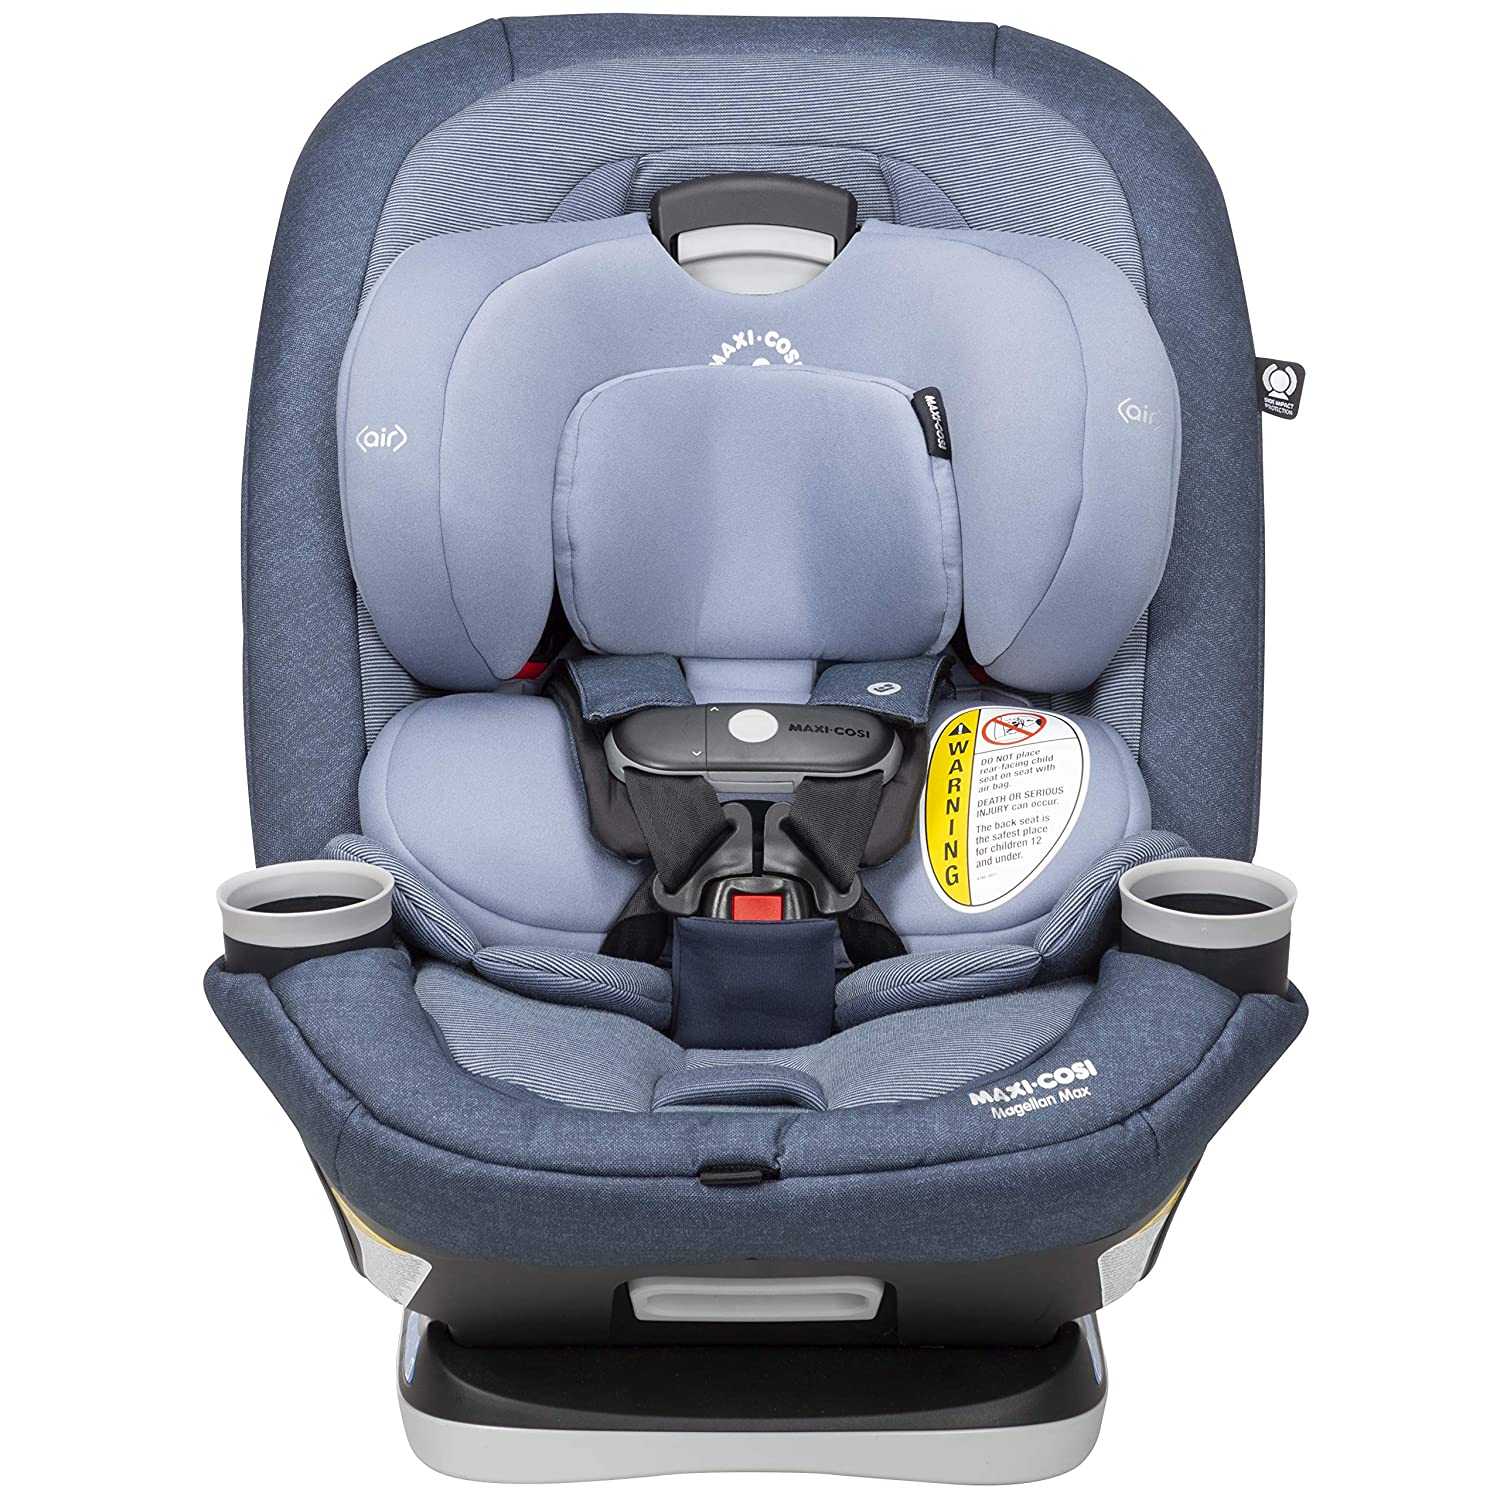 Maxi Cosi Magellan Xp Max Best Booster Seats with 5 Point Harness